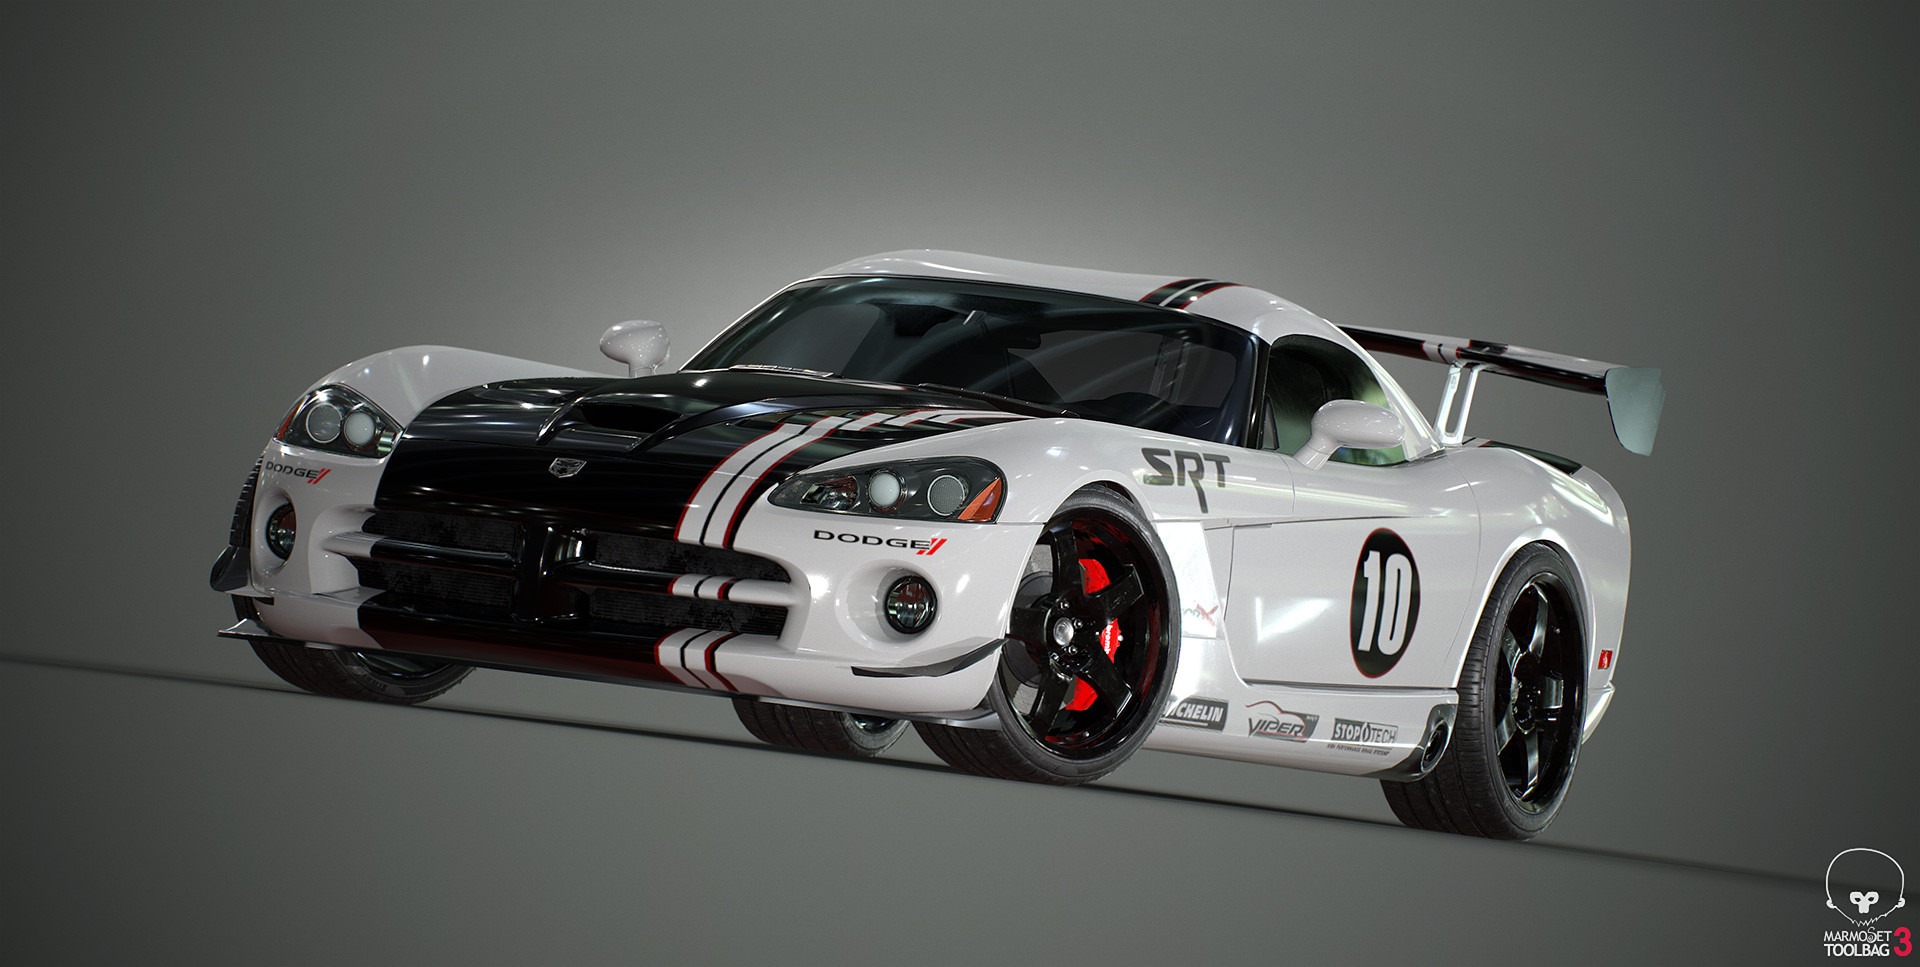 David letondor dodgeviper srt10 david letondor v3